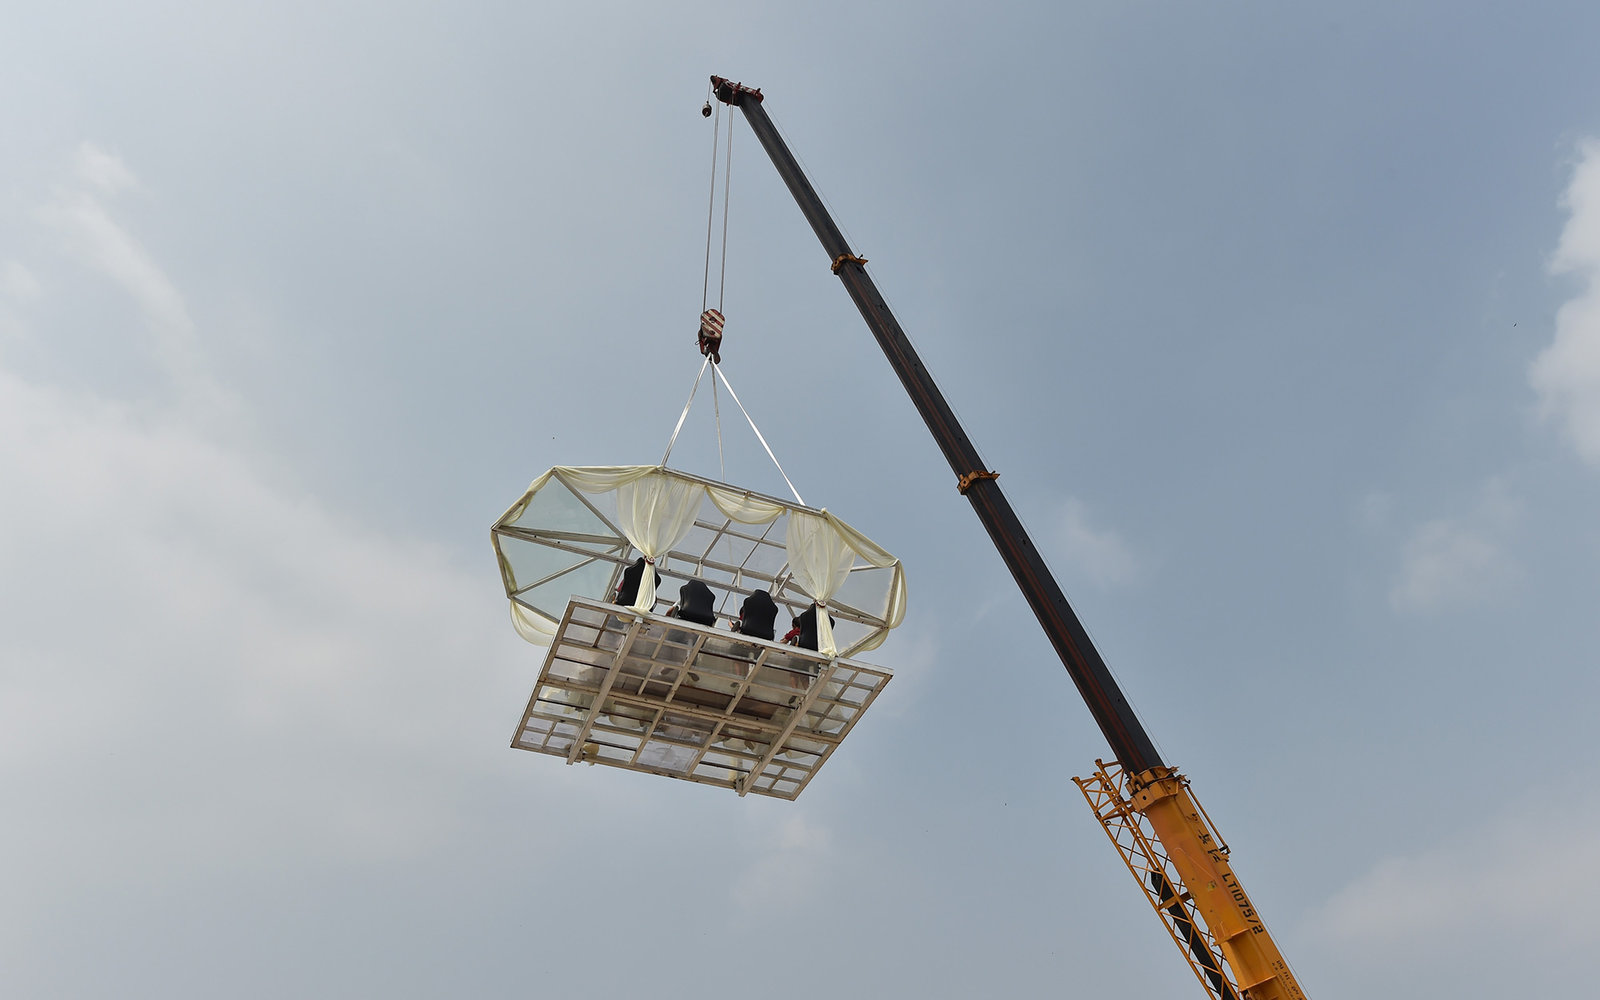 HEFEI, CHINA - SEPTEMBER 24: (CHINA OUT) People enjoy free launch at a dinner table lifted into sky by a crane on September 24, 2015 in Hefei, Anhui Province of China. The event is launched by Wanda Theme Park to celebrate the upcoming first anniversary o